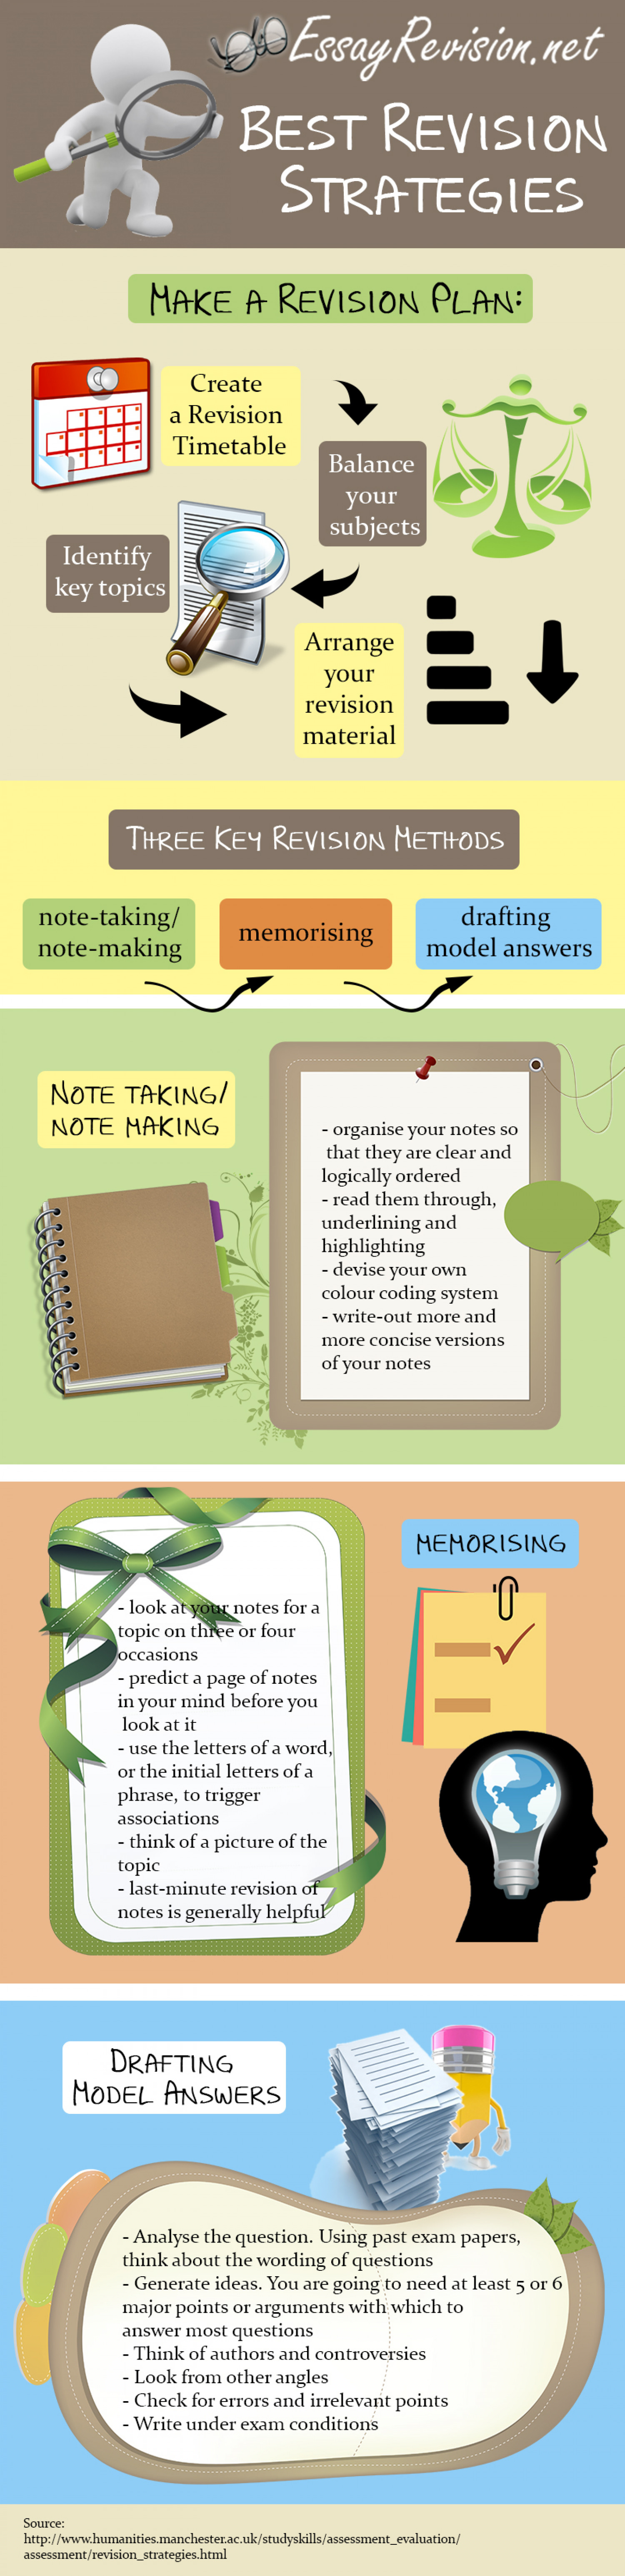 Best Revision Strategies Infographic